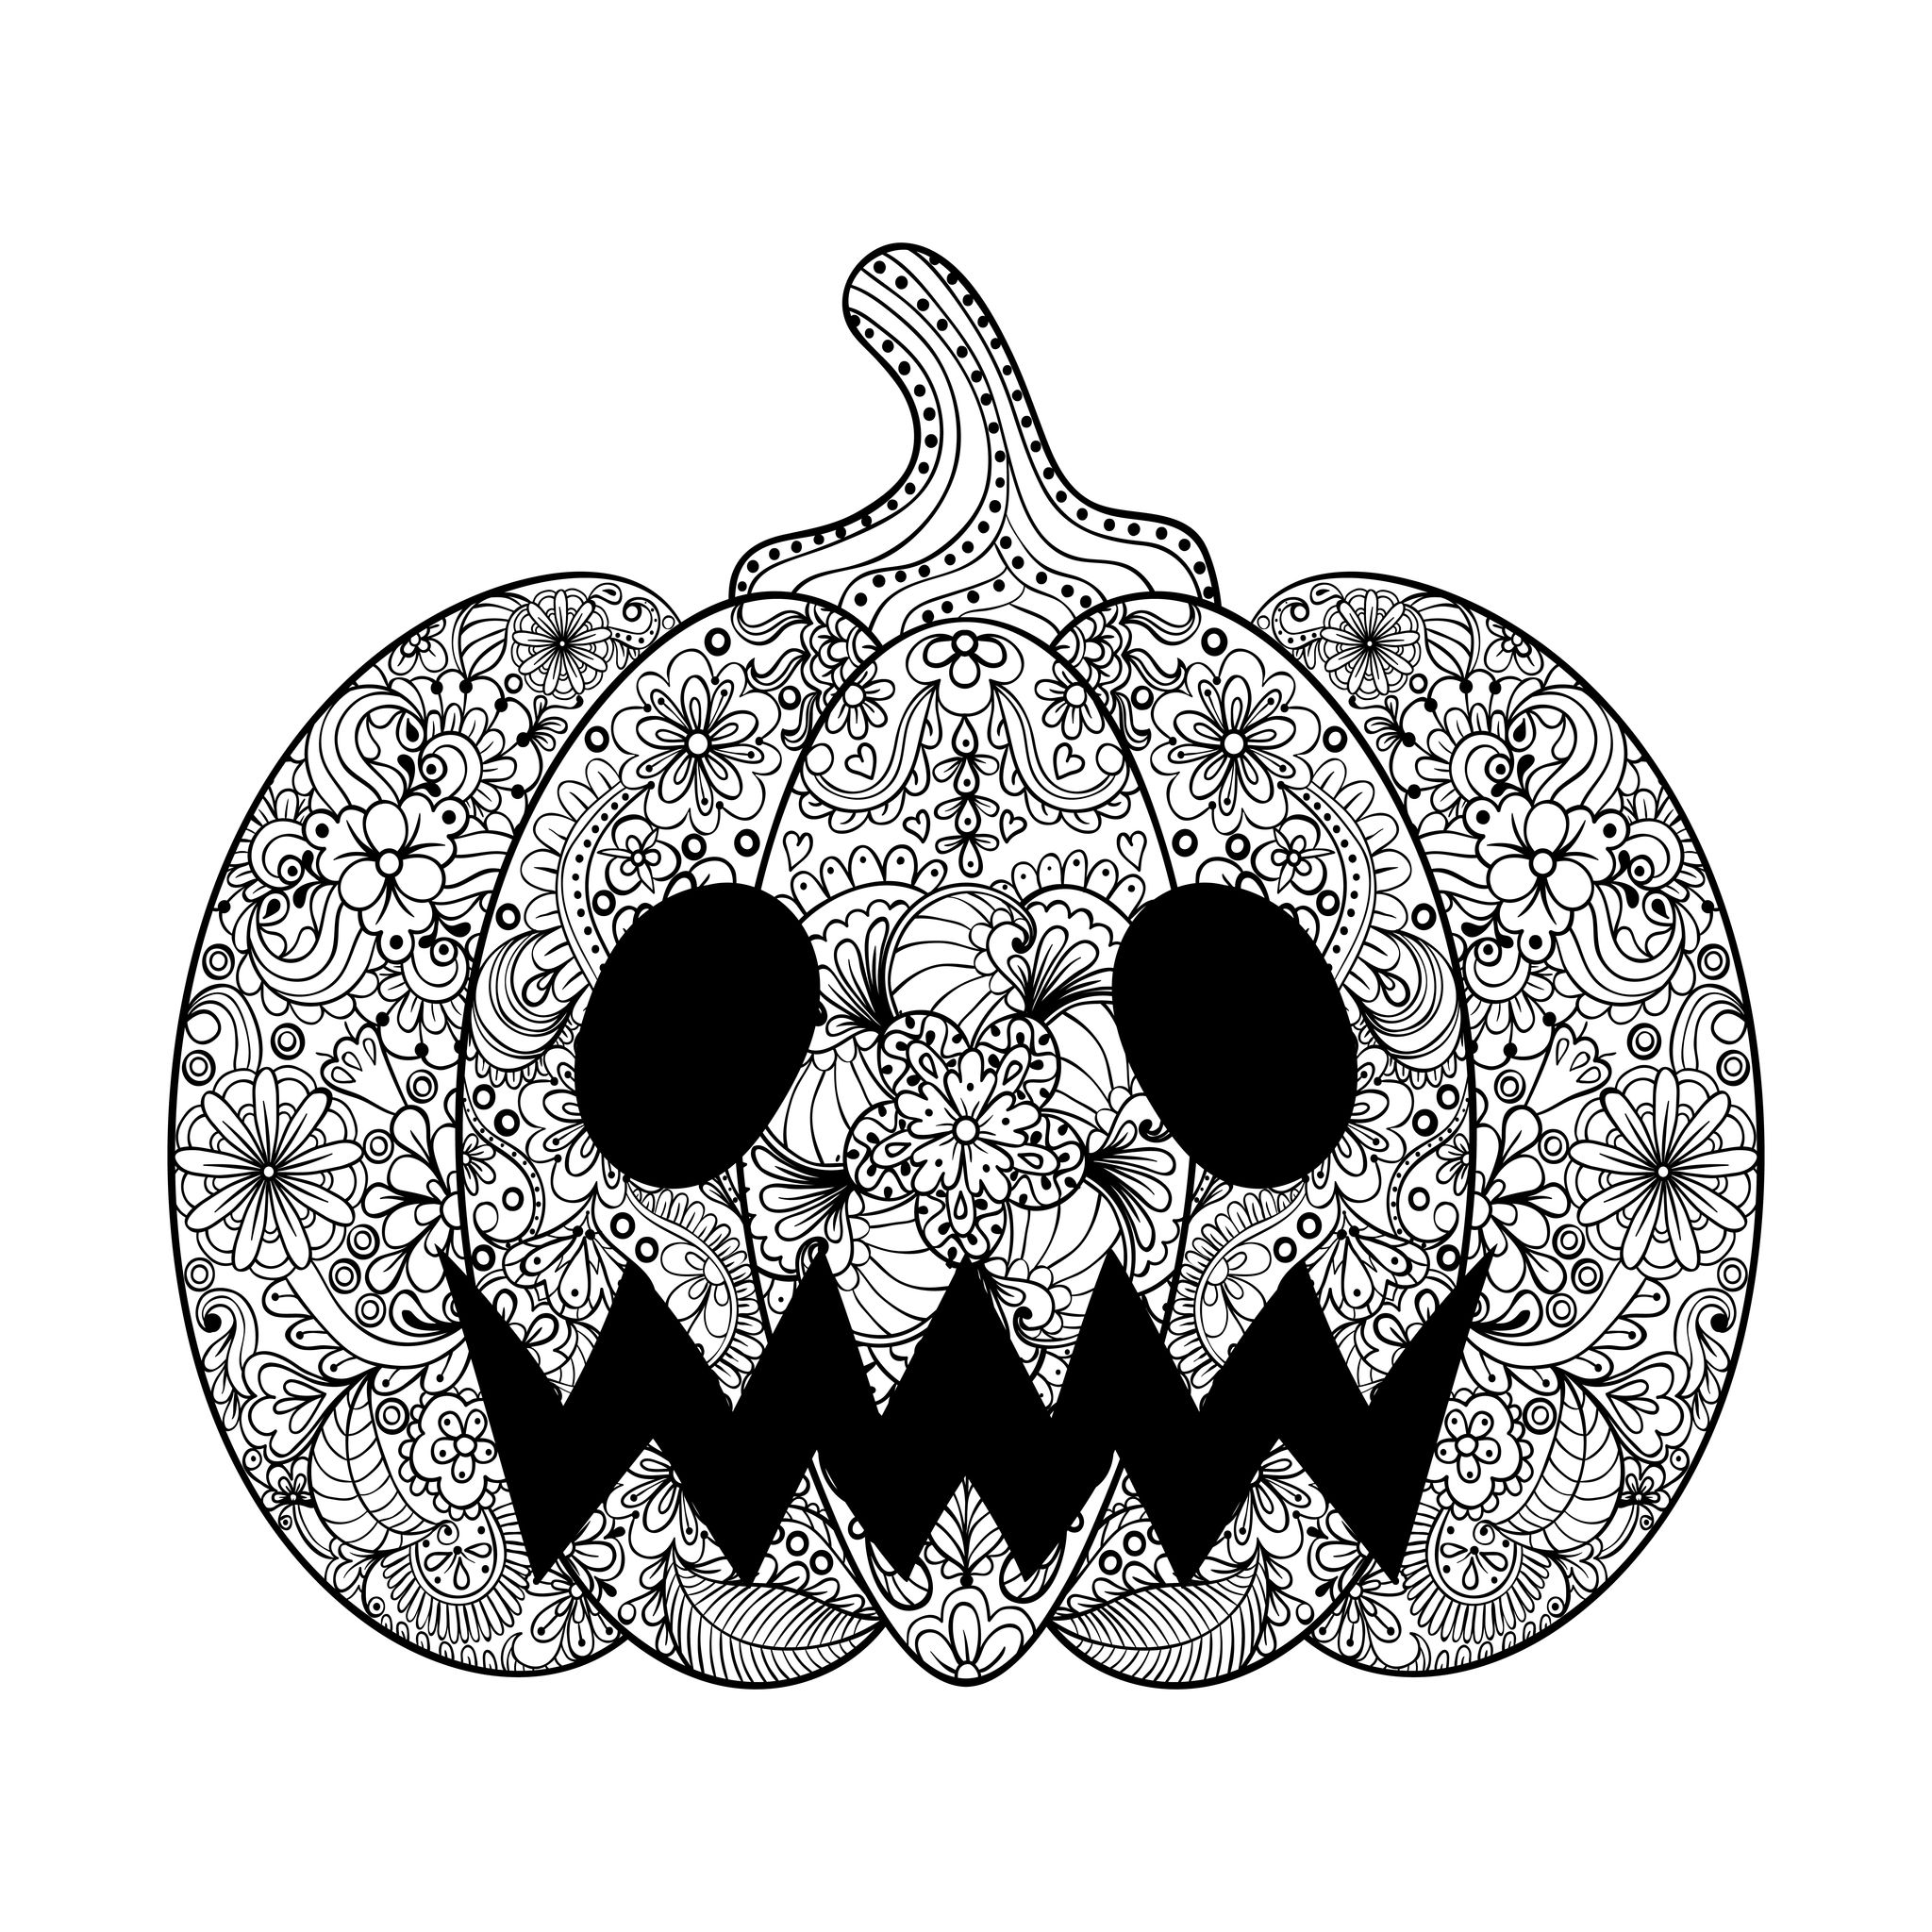 coloring pumpkin halloween clipart pumpkin cloring pages 2020 z31 coloring page clipart coloring halloween pumpkin